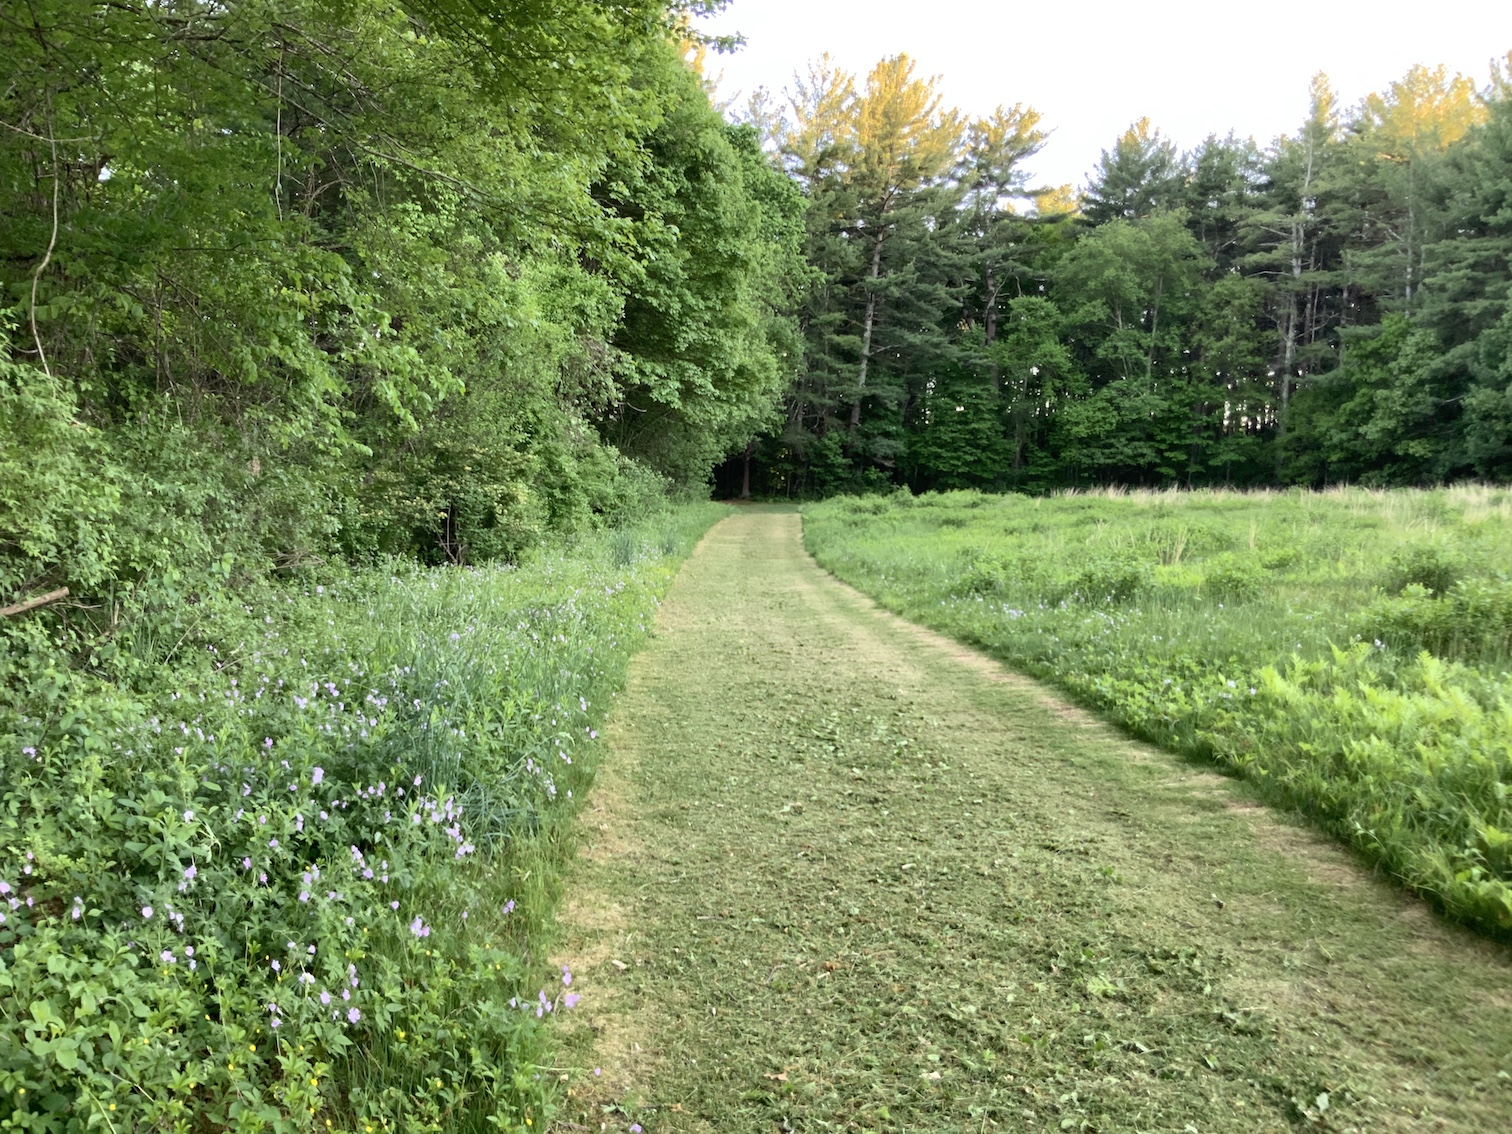 looking south along trail, geraniums at left edge